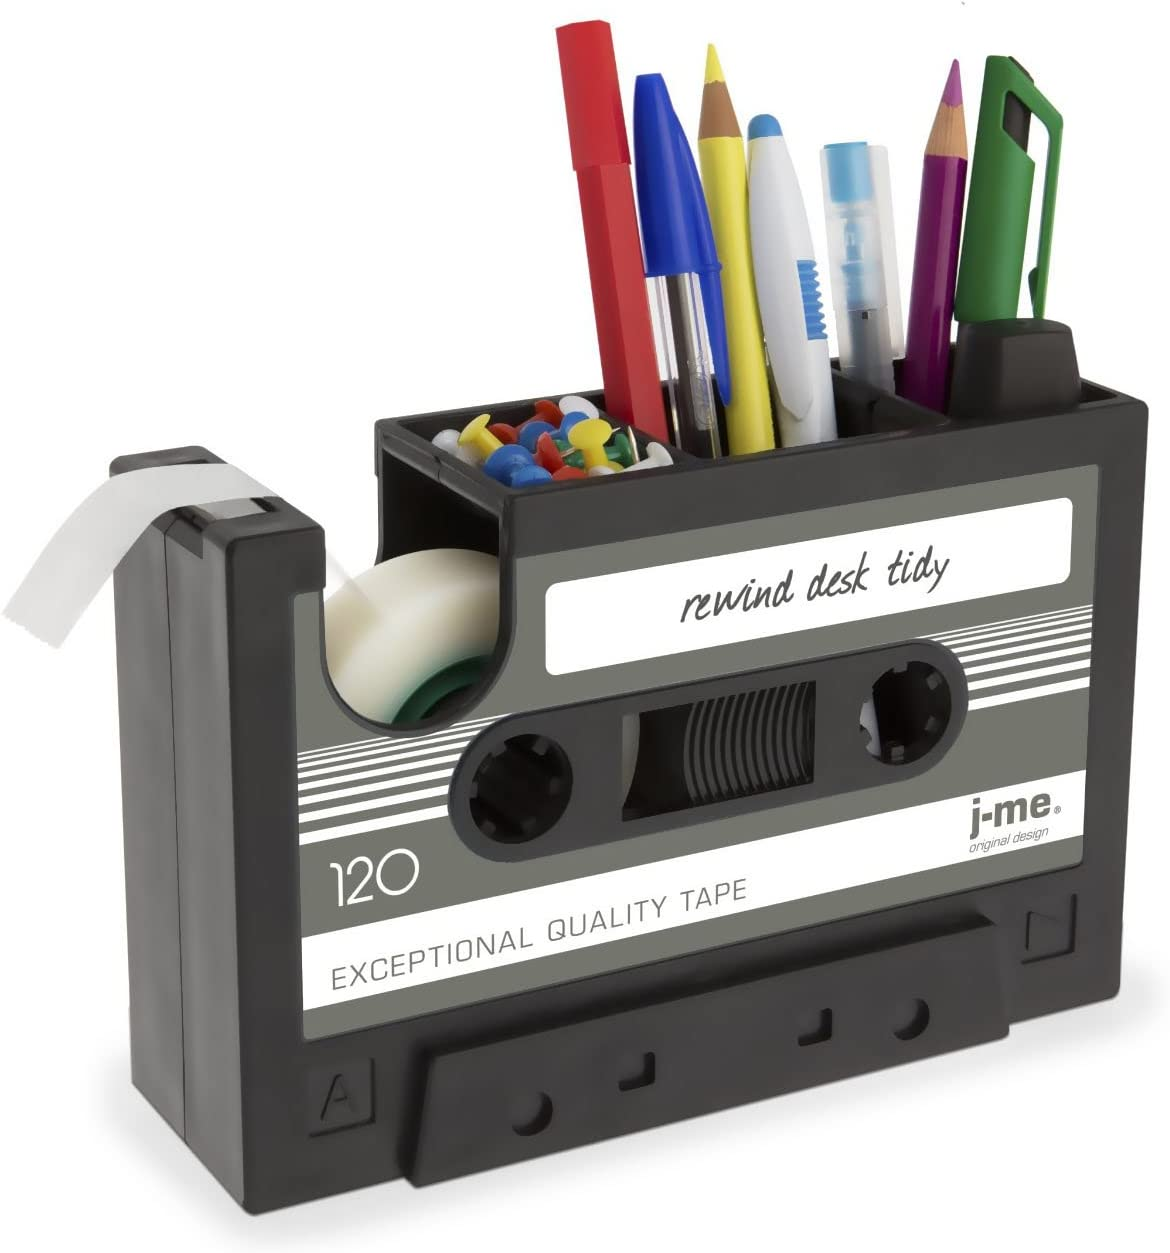 Cassette Tape Dispenser Pen Holder Vase Pencil Pot Stationery Desk Tidy Container Office Stationery Supplier Gift-onepalace (Black)